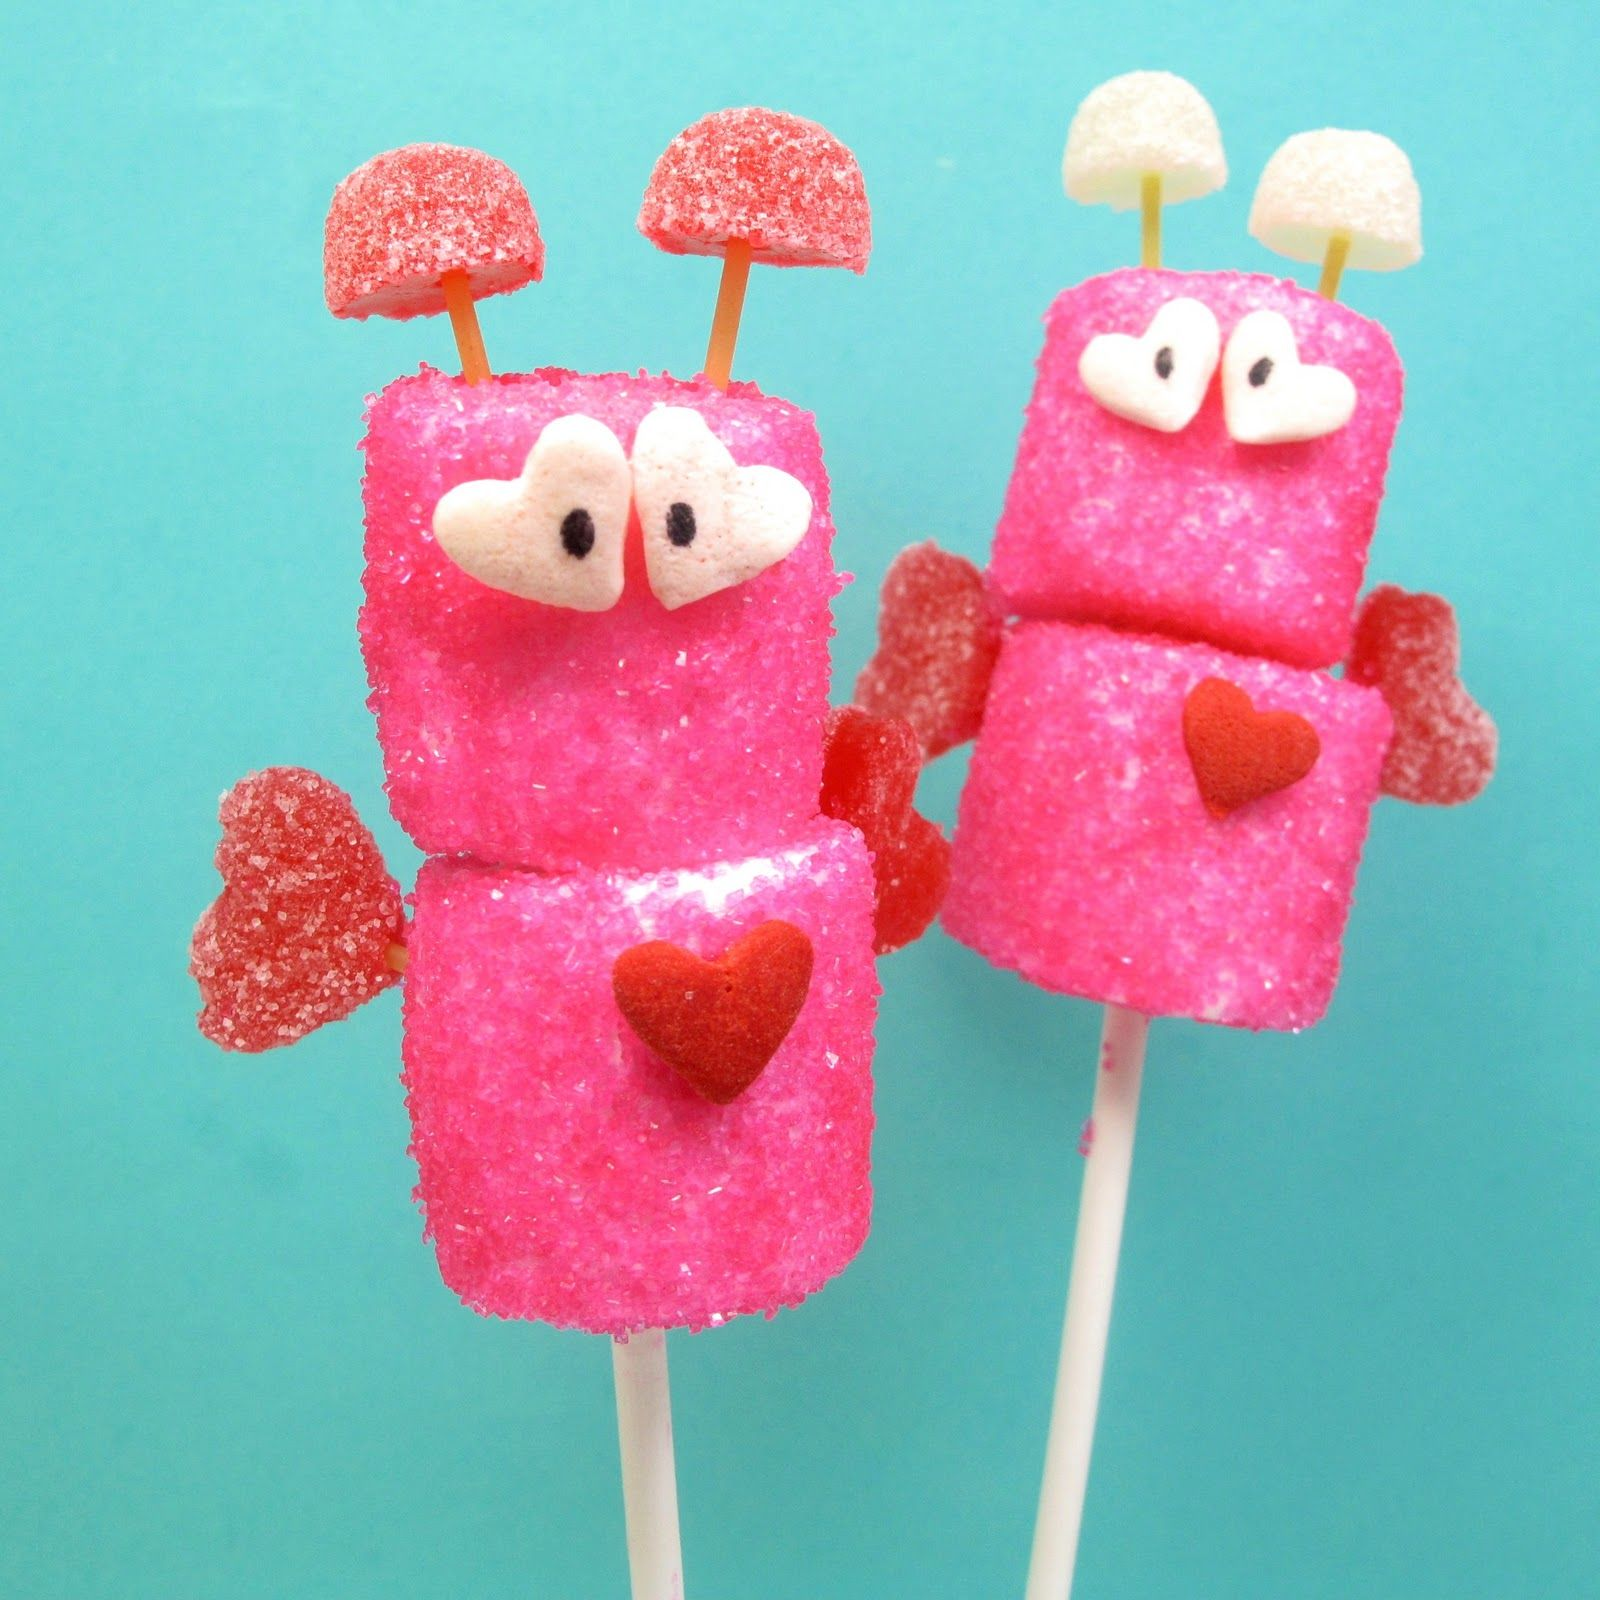 marshmallow love bugs for Valentine's Day - the decorated cookie